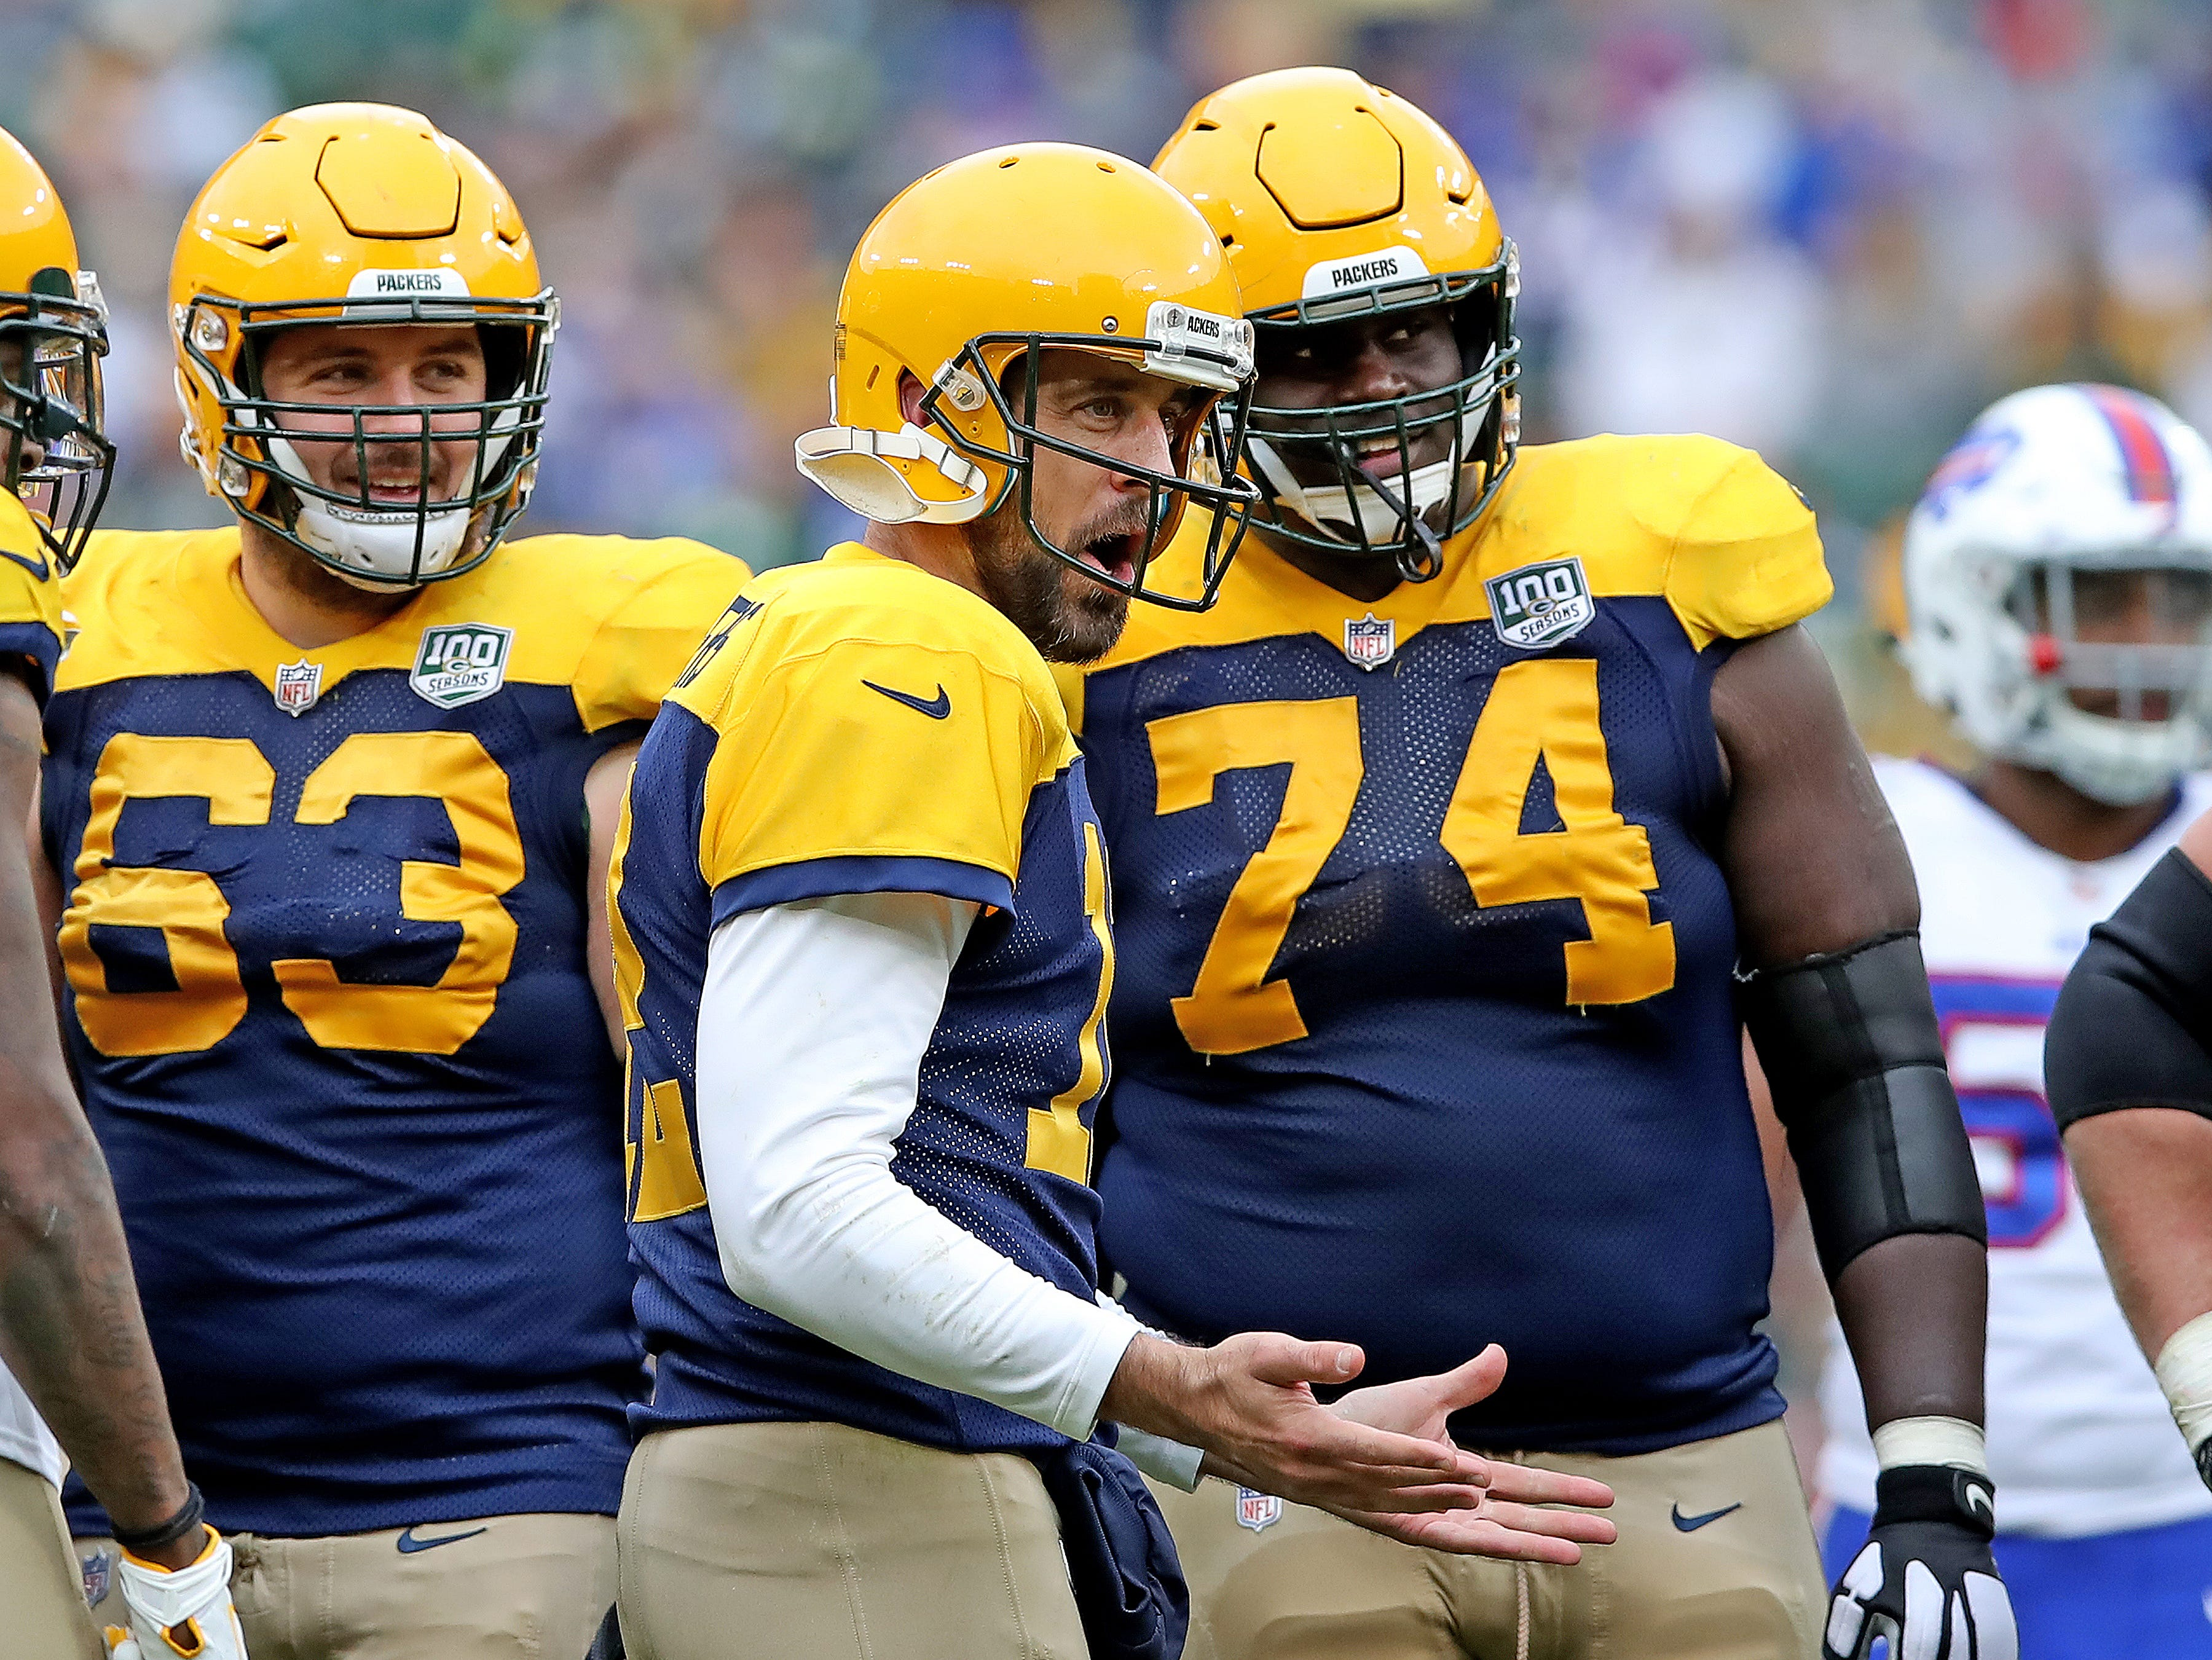 Green Bay Packers quarterback Aaron Rodgers (12) reacts to a group in the stands against the Buffalo Bills Sunday September 30, 2018 at Lambeau Field in Green Bay, Wis.